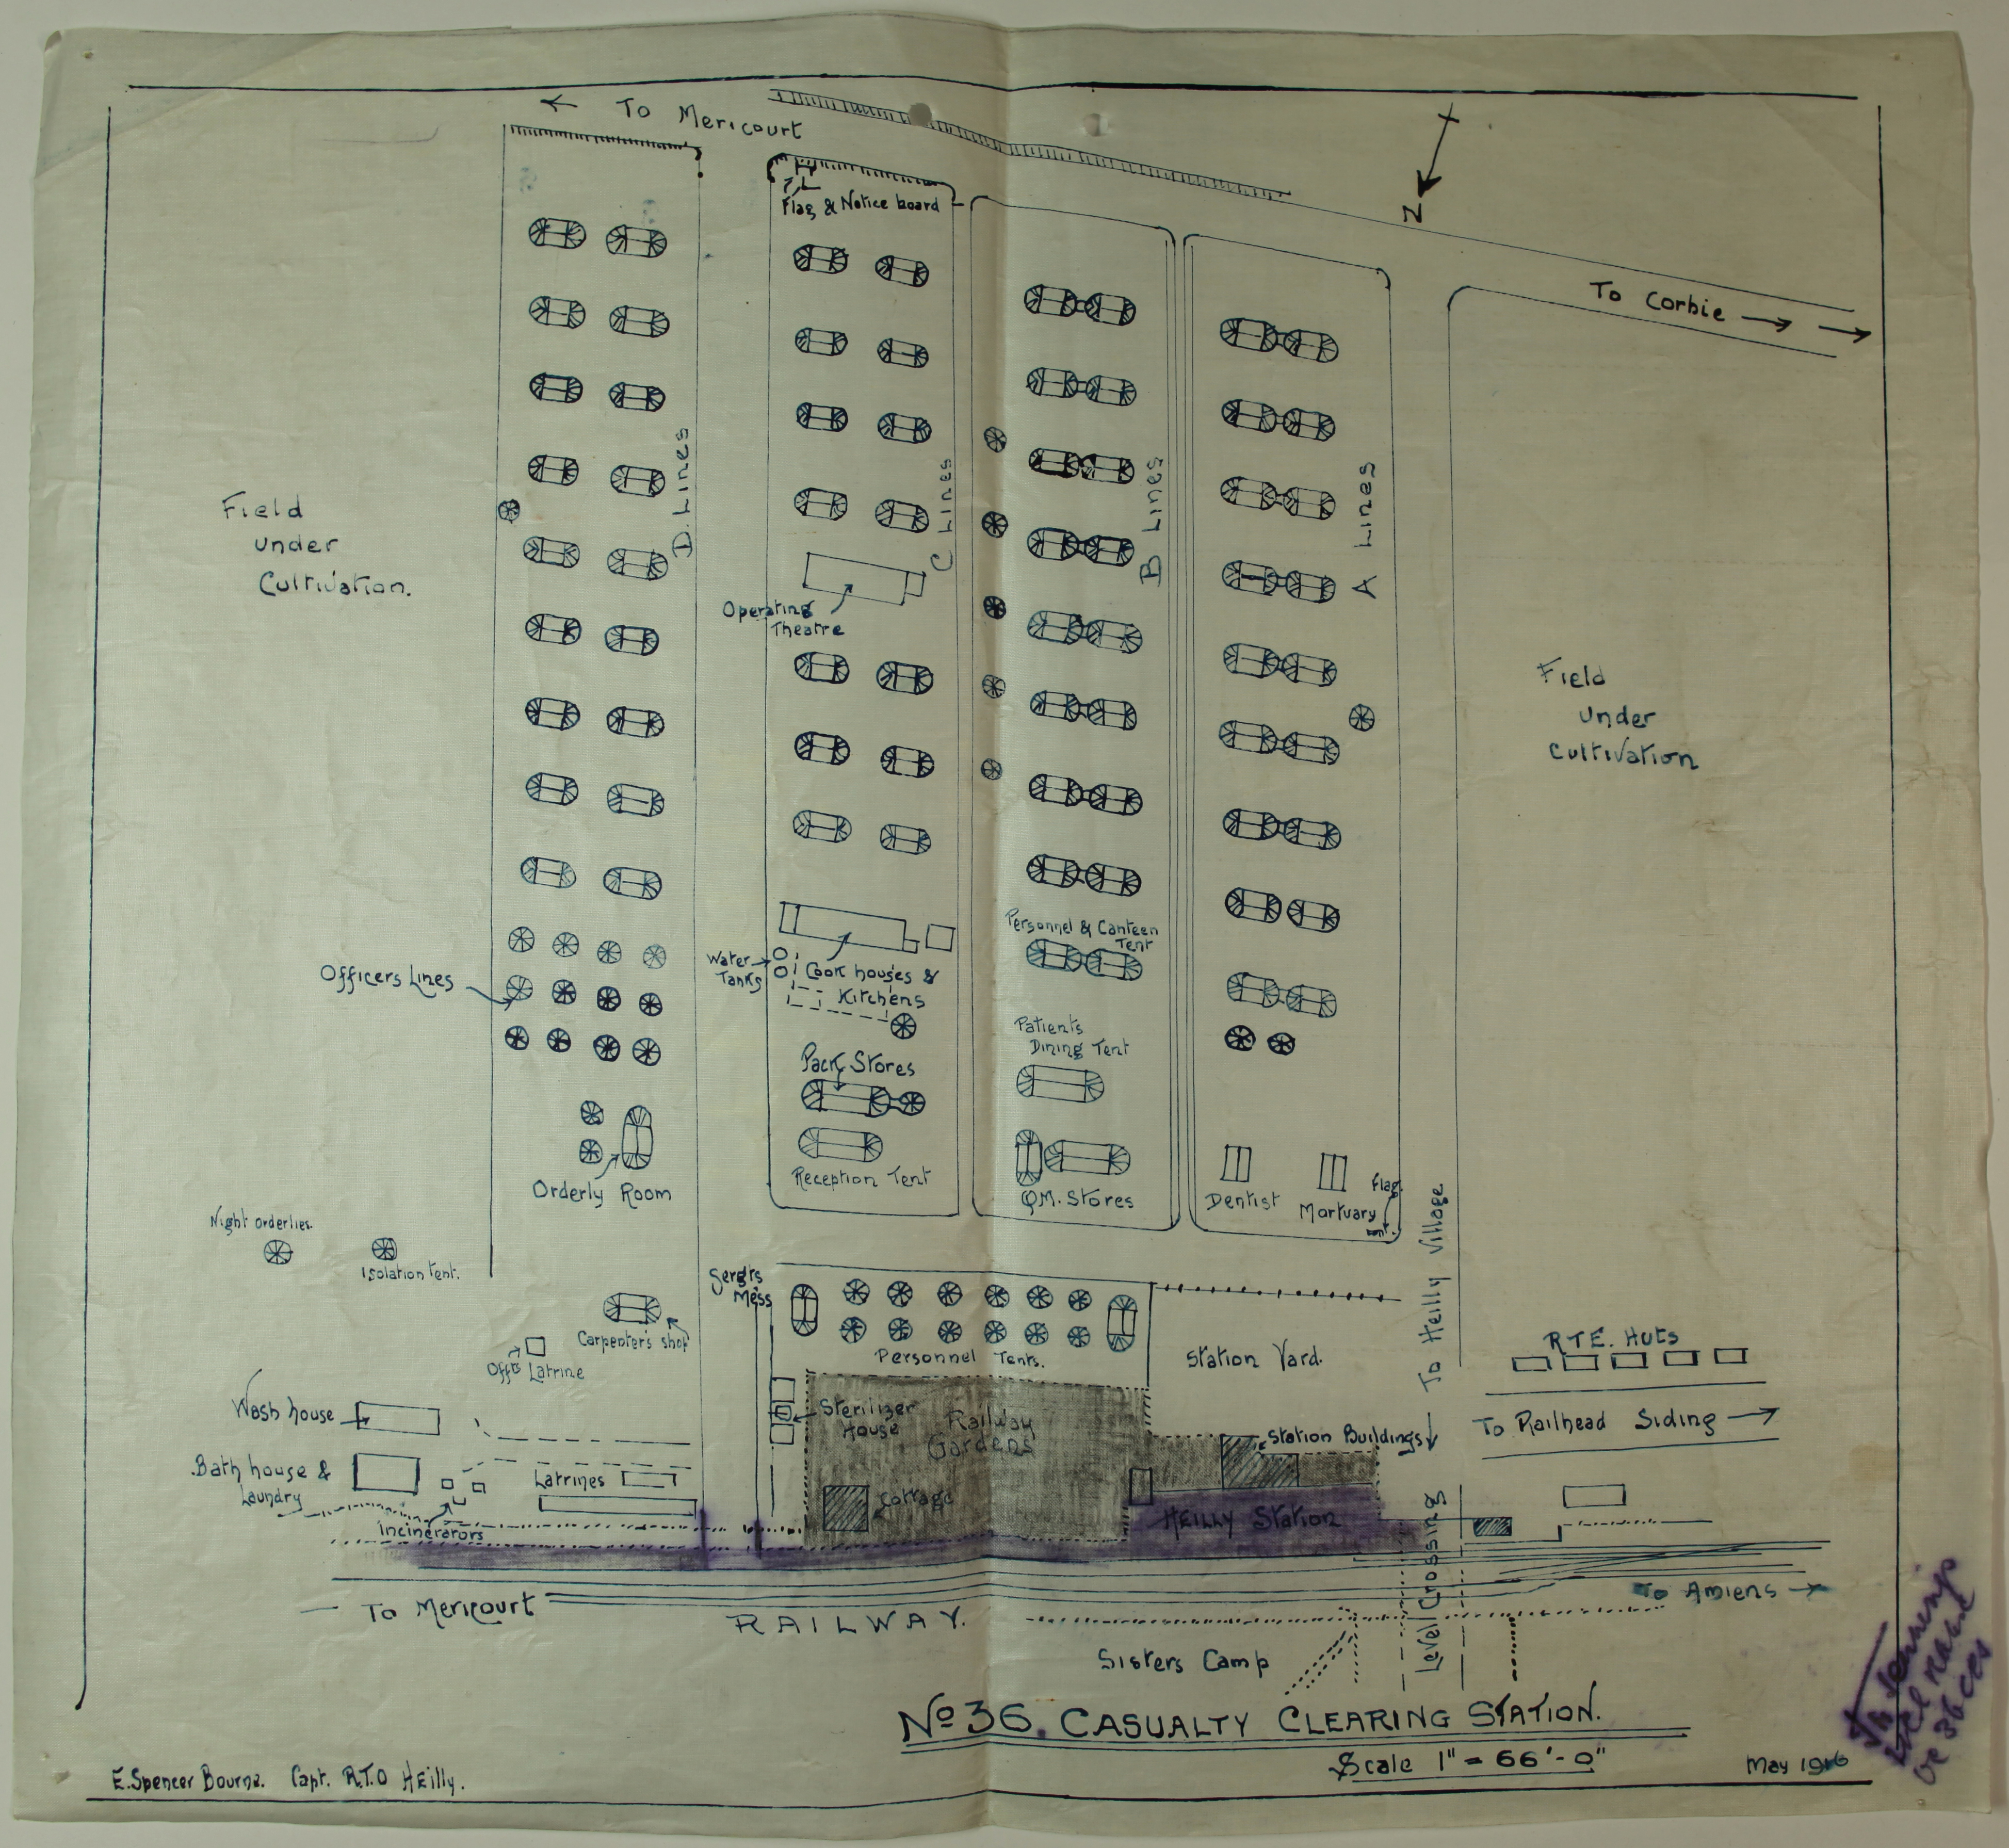 WO95/344 Casualty Clearing Station diagram